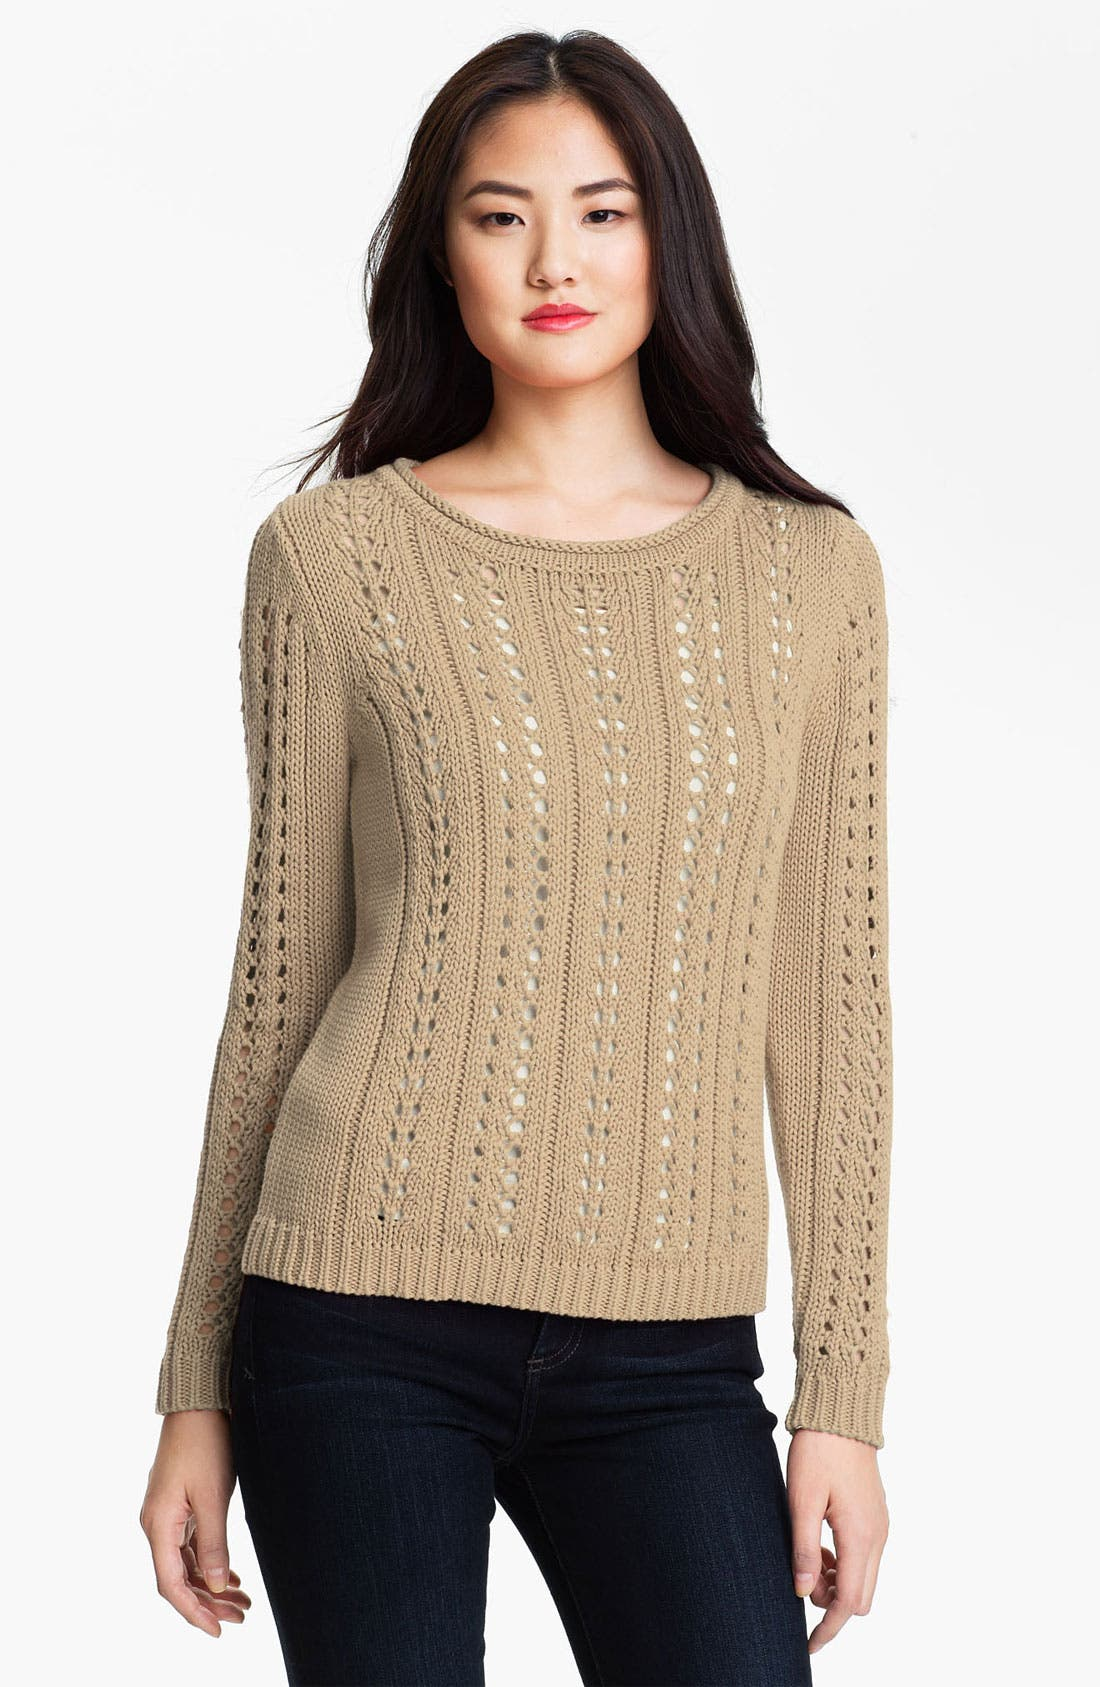 Alternate Image 1 Selected - Vince Camuto Cable Pointelle Sweater (Petite)